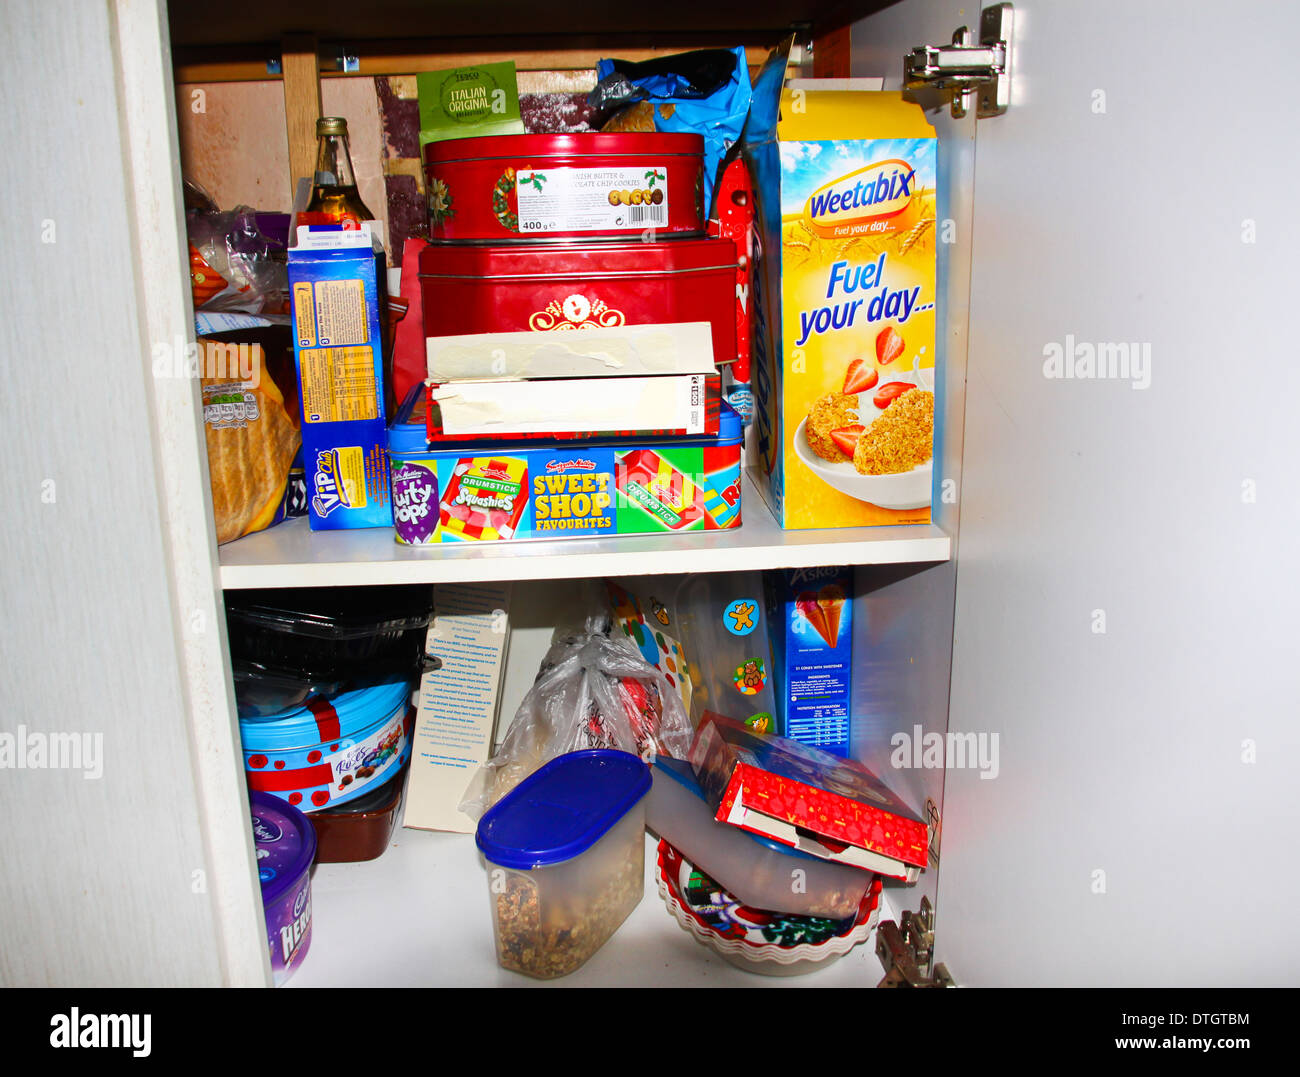 Kitchen food cupboard - Stock Image